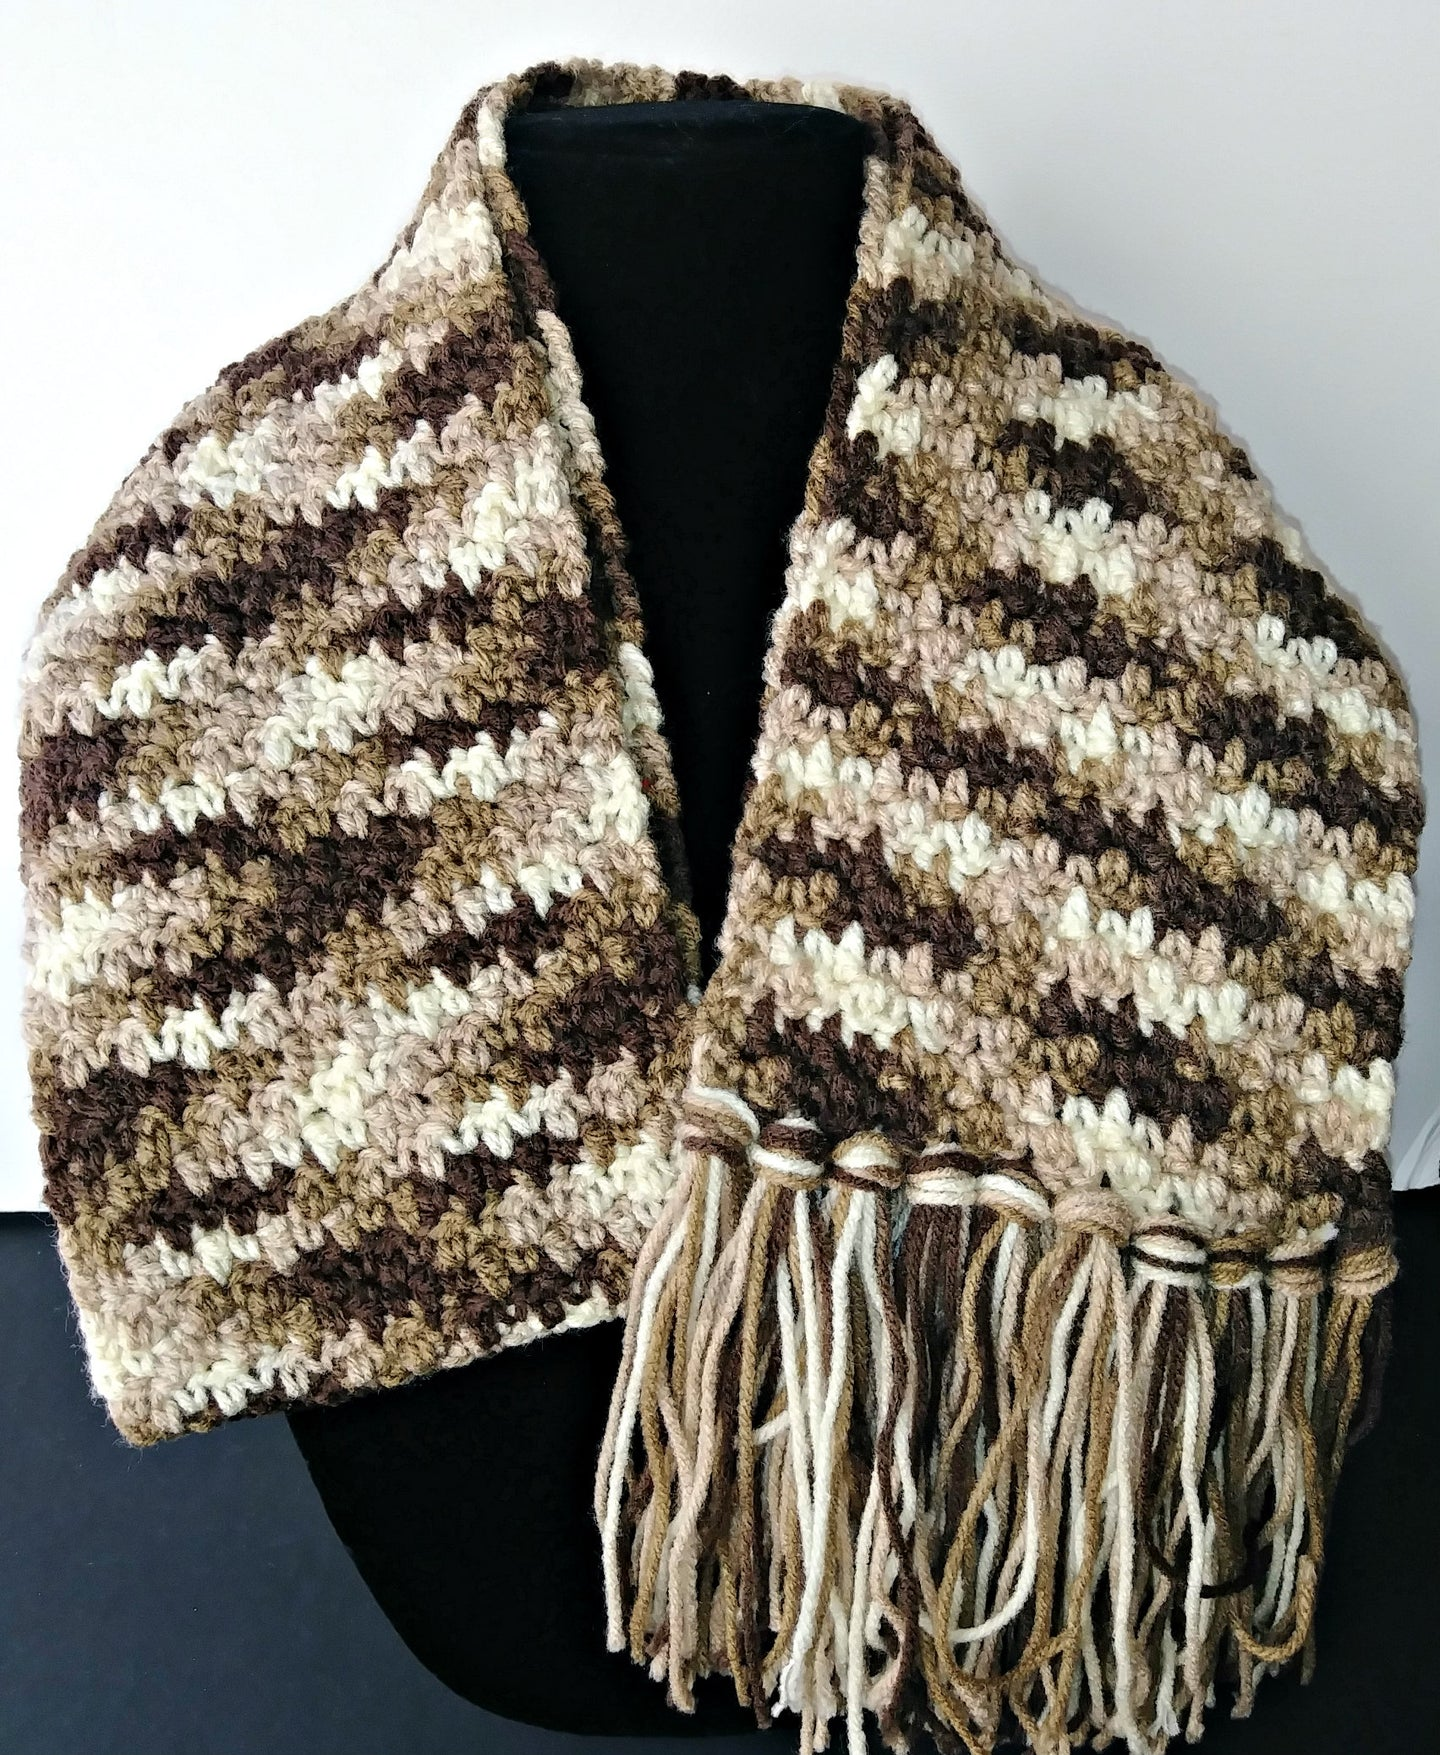 Browns Variegated Winter Unisex Scarf with Fringe